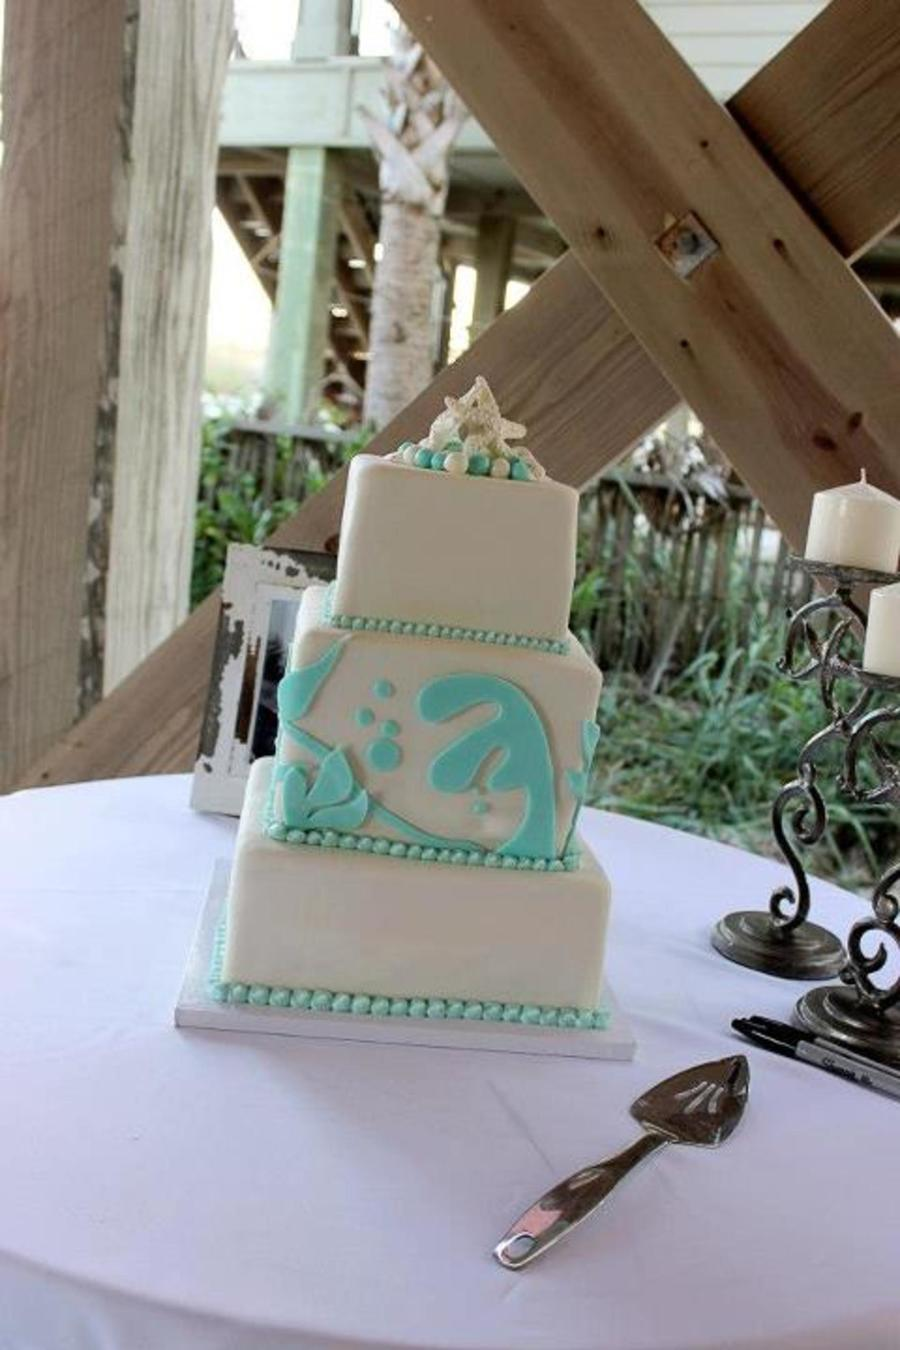 Beachside Wedding on Cake Central